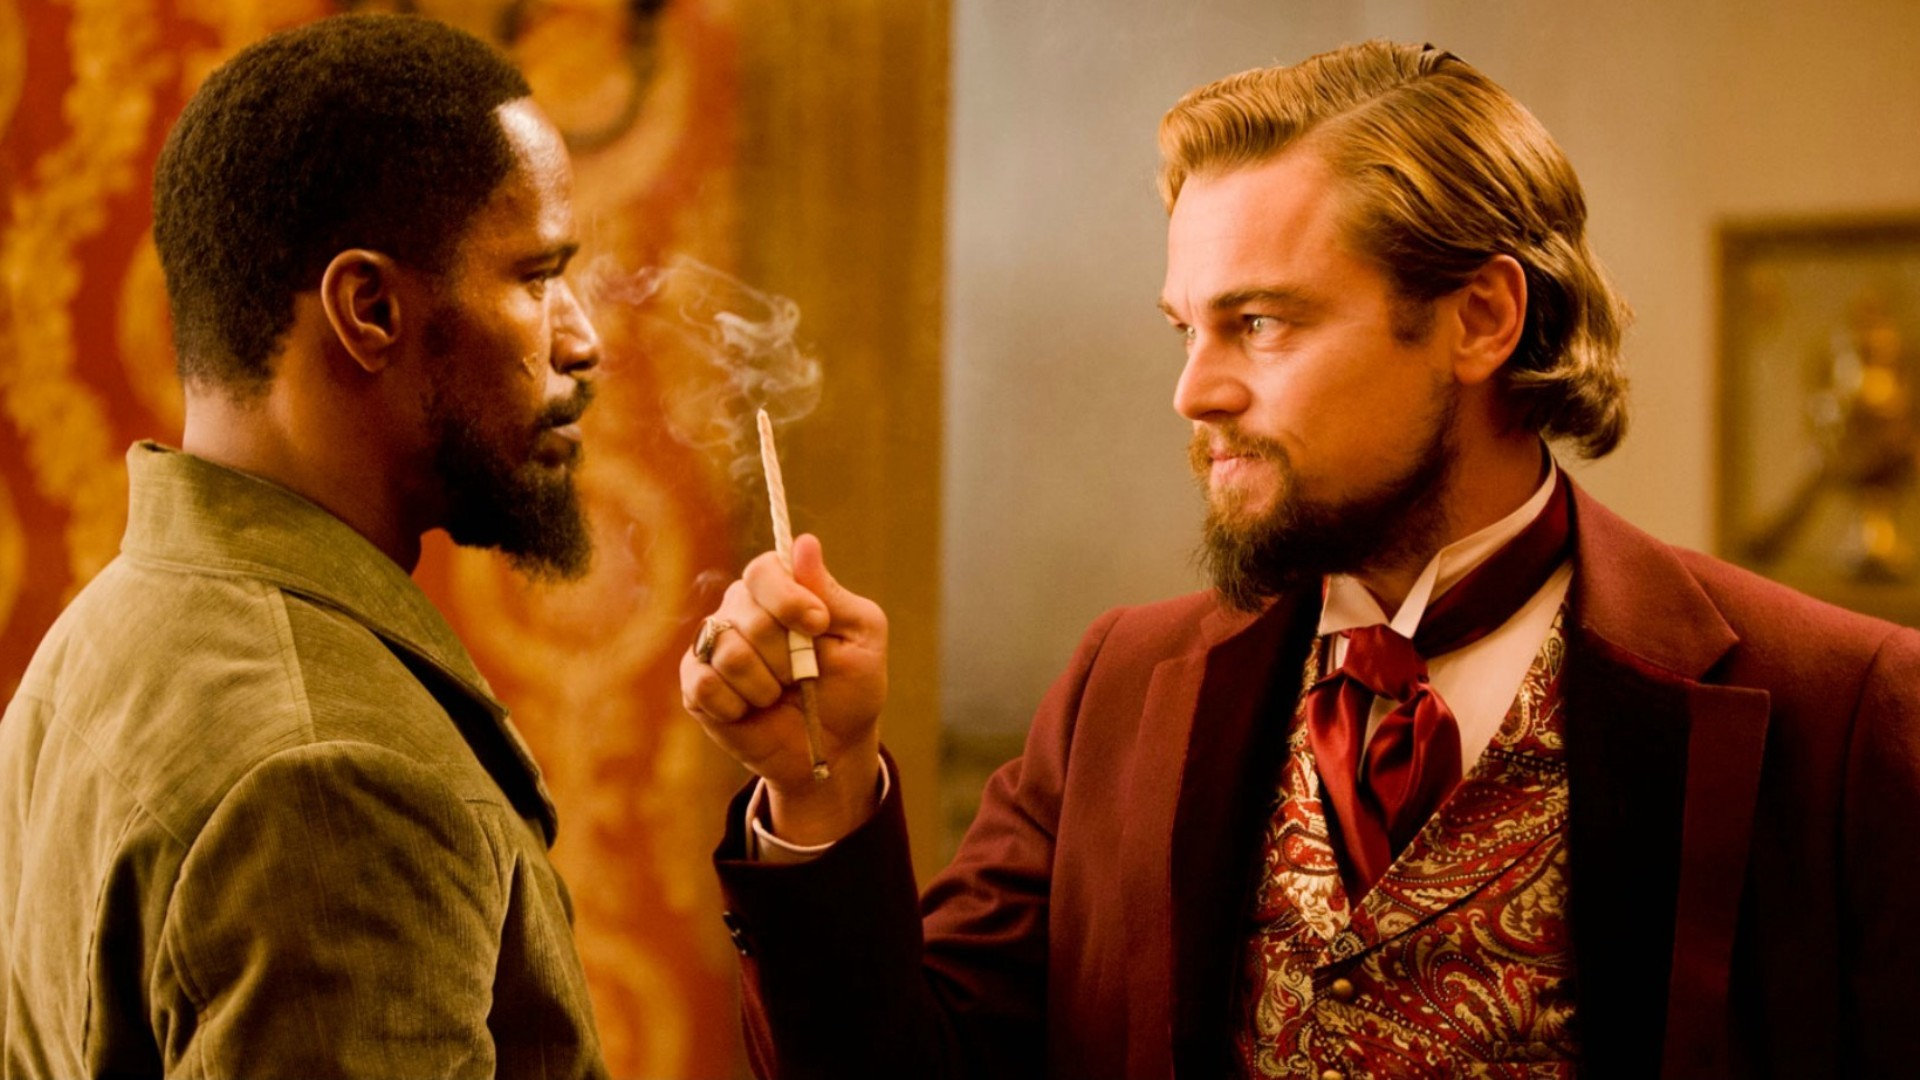 django unchained movie hd wallpaper photos 96